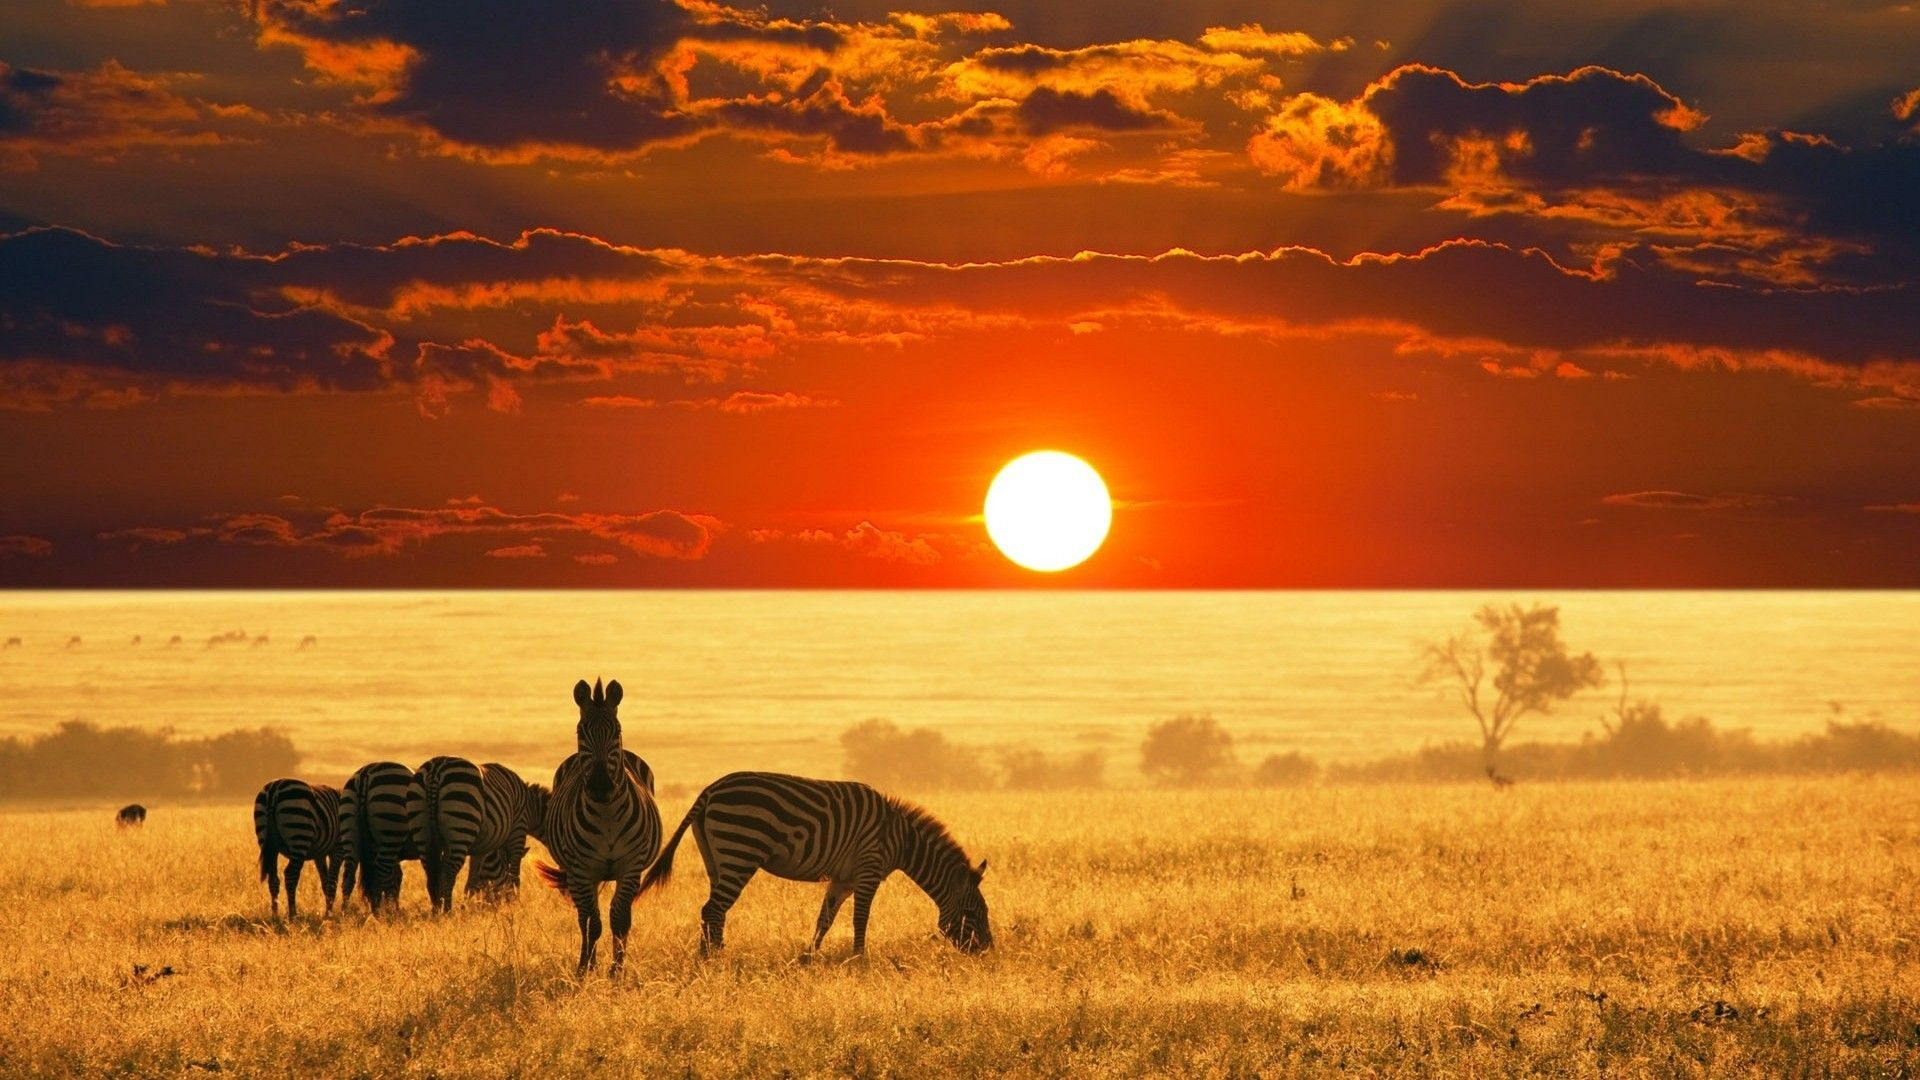 Top Safari wallpaper Ideas – How to Make Your Own